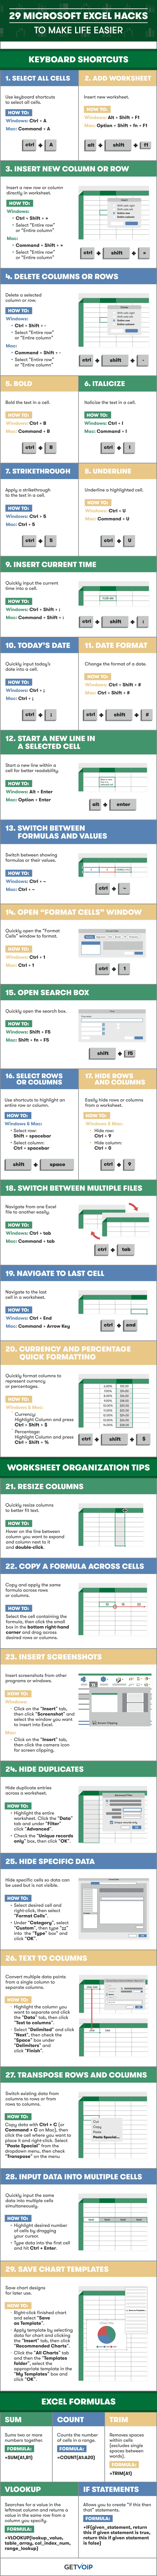 Excel Hacks Infographic